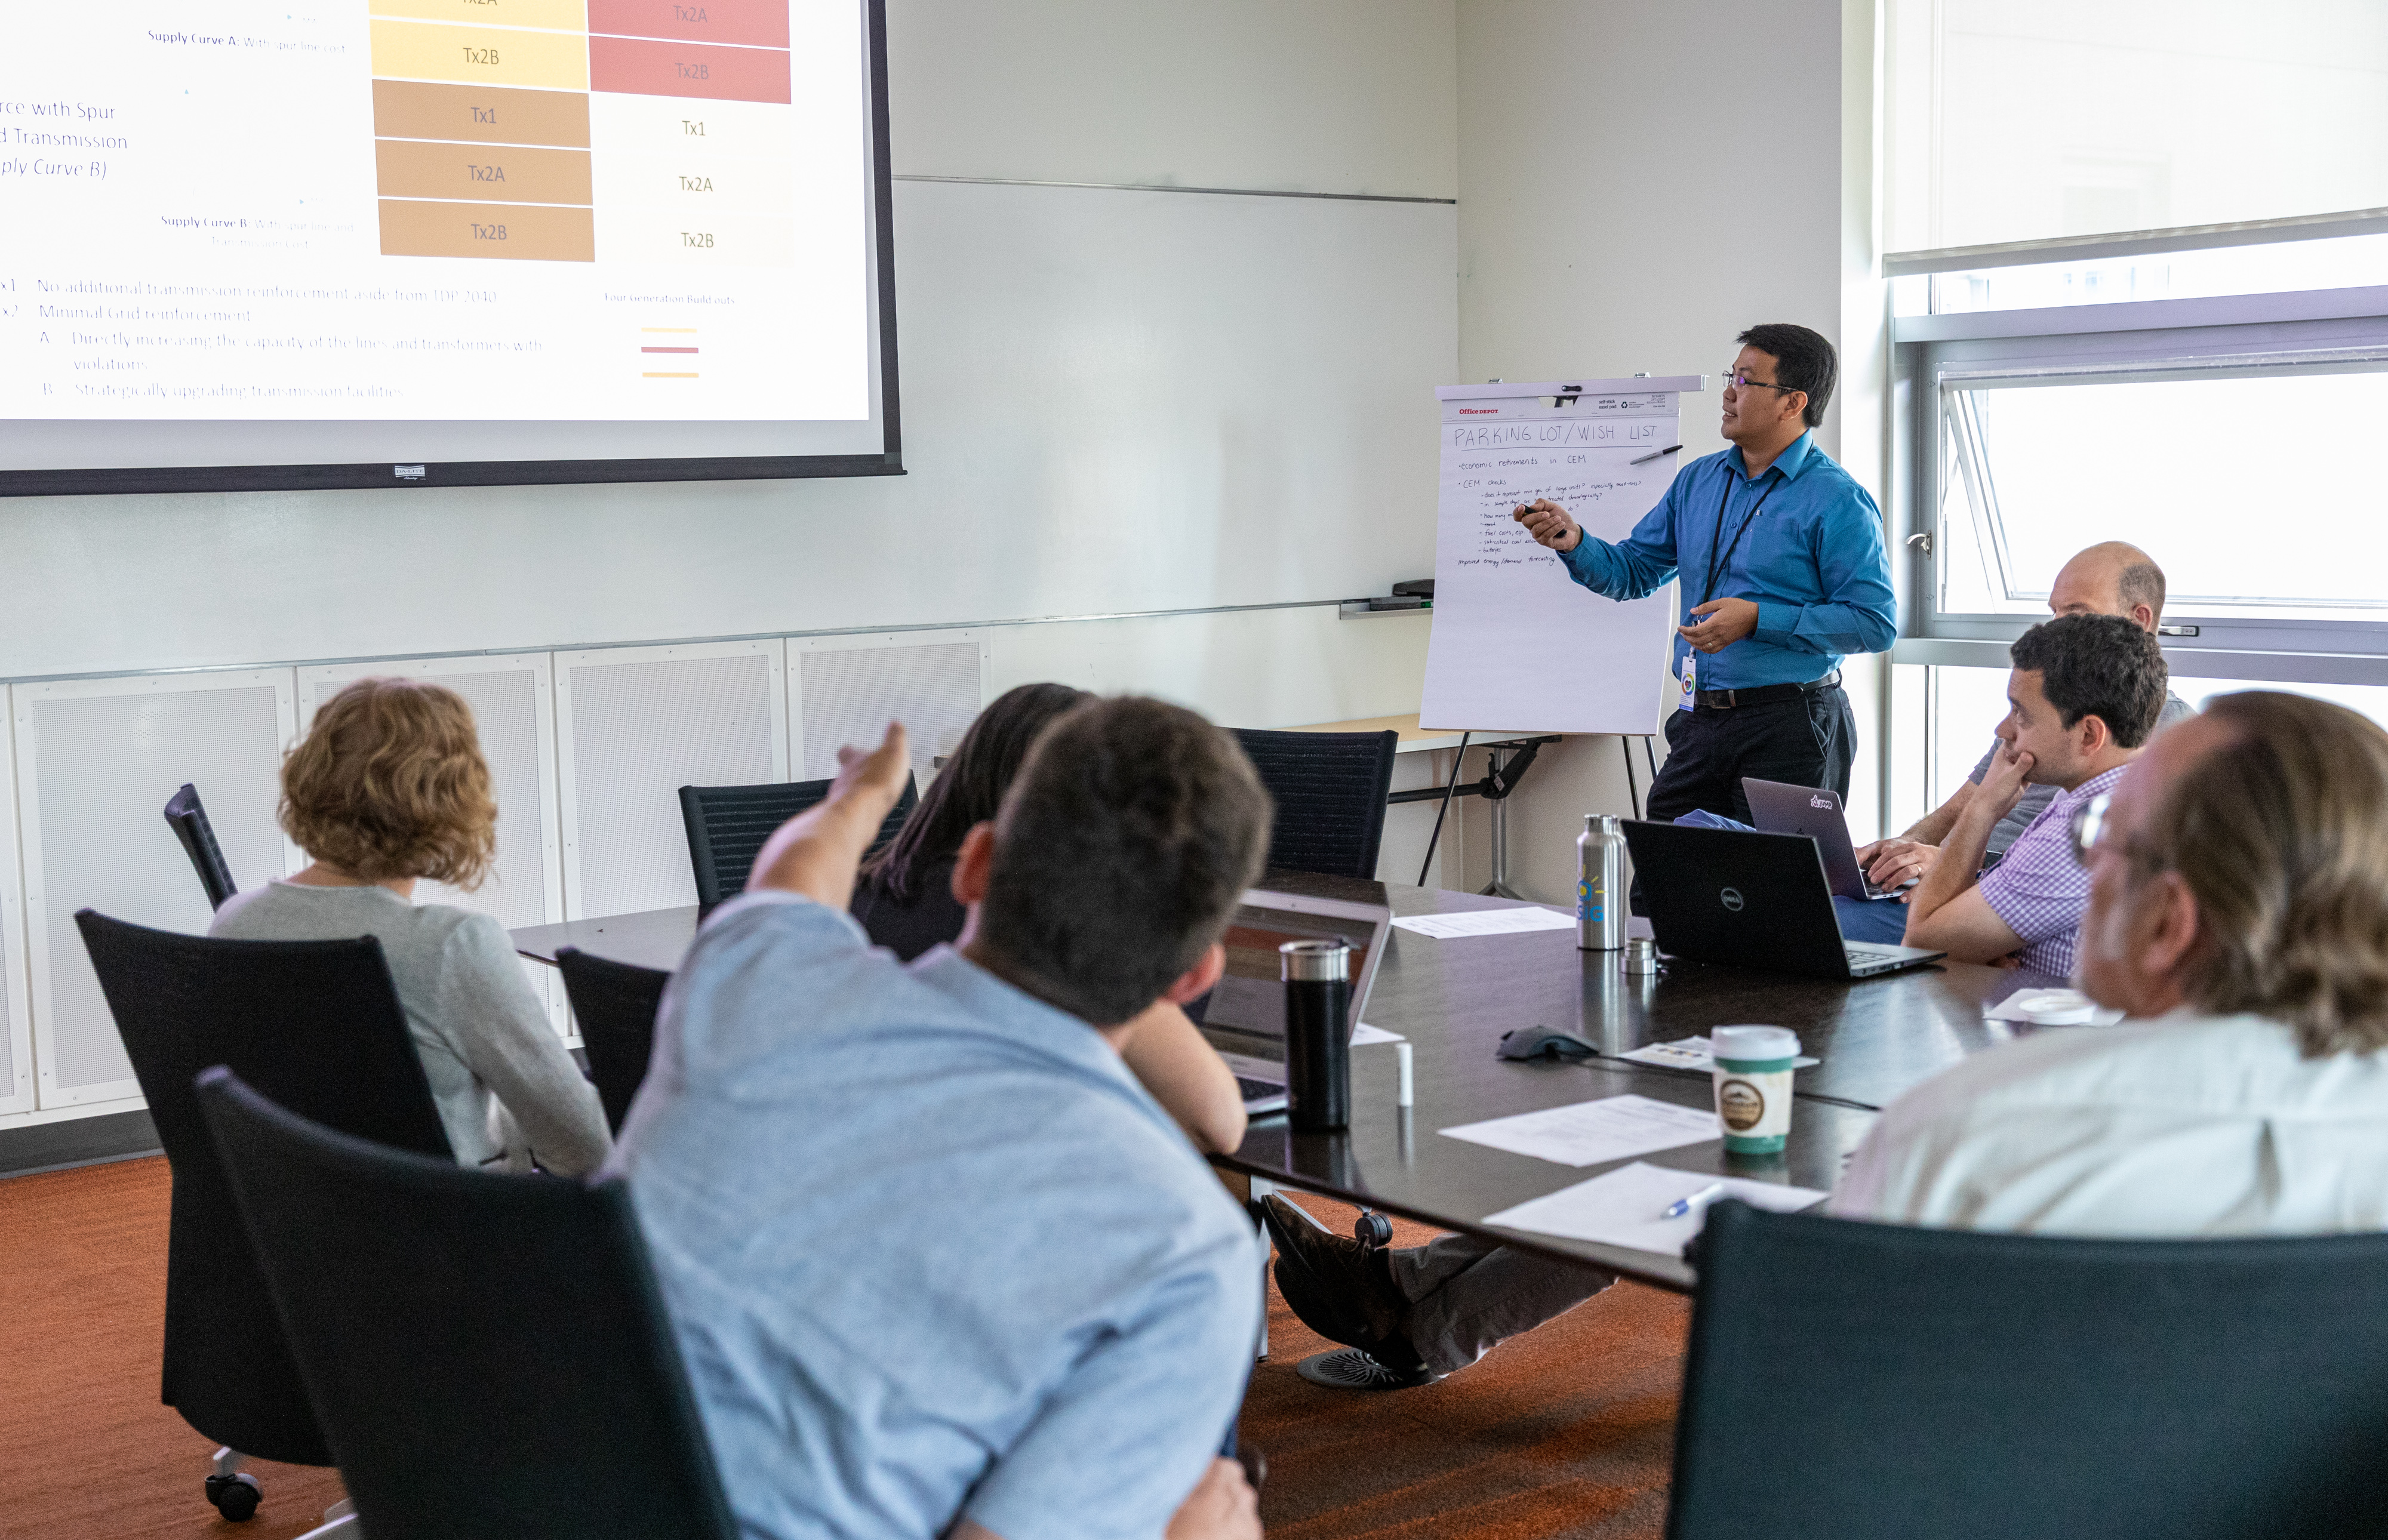 A man presents a PowerPoint slide in front of a group of people.